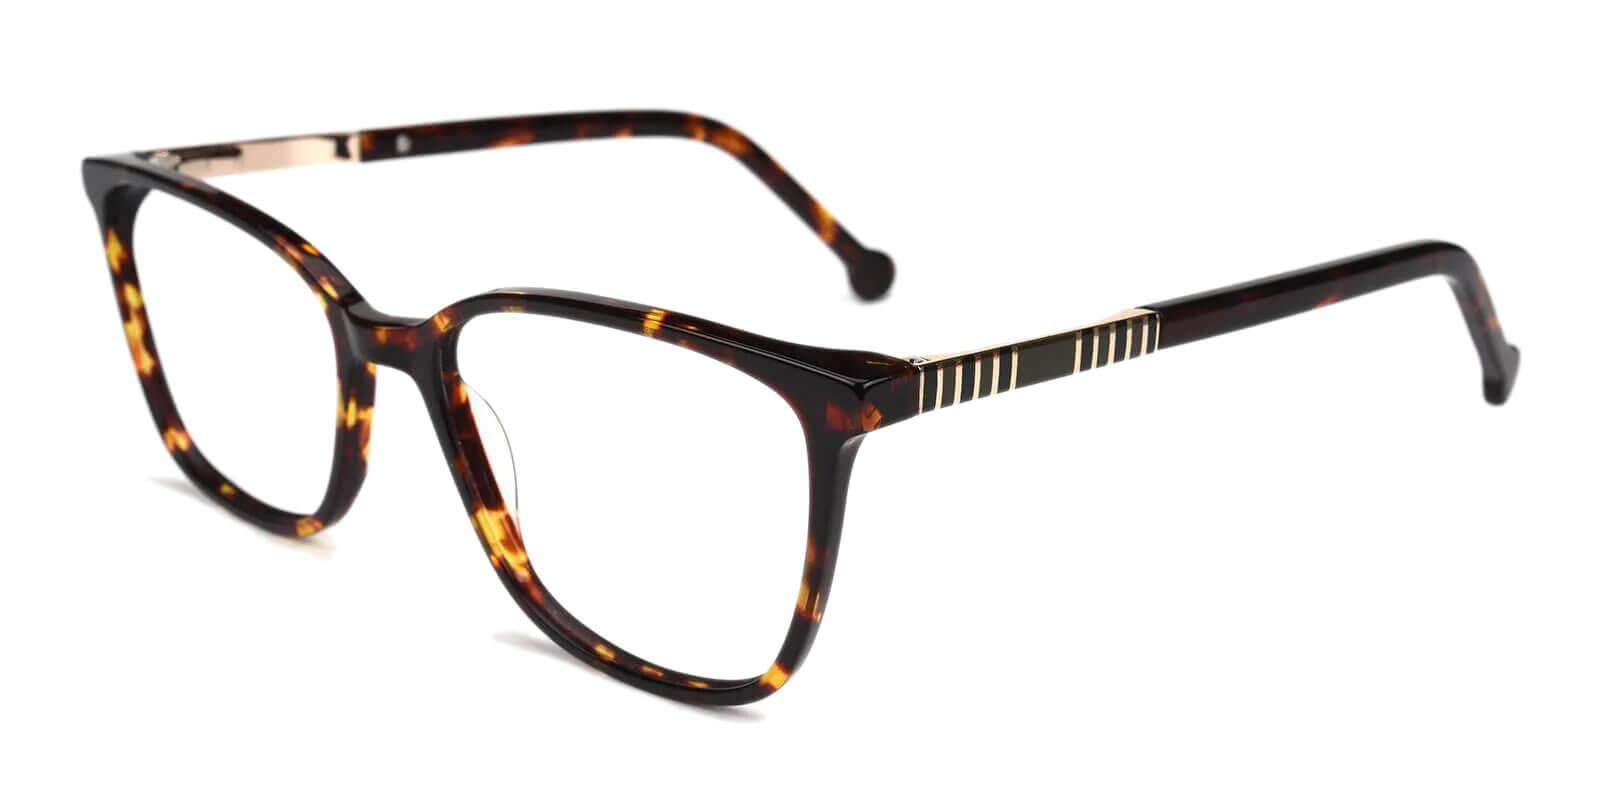 Traverse Tortoise Acetate Eyeglasses , SpringHinges , UniversalBridgeFit Frames from ABBE Glasses